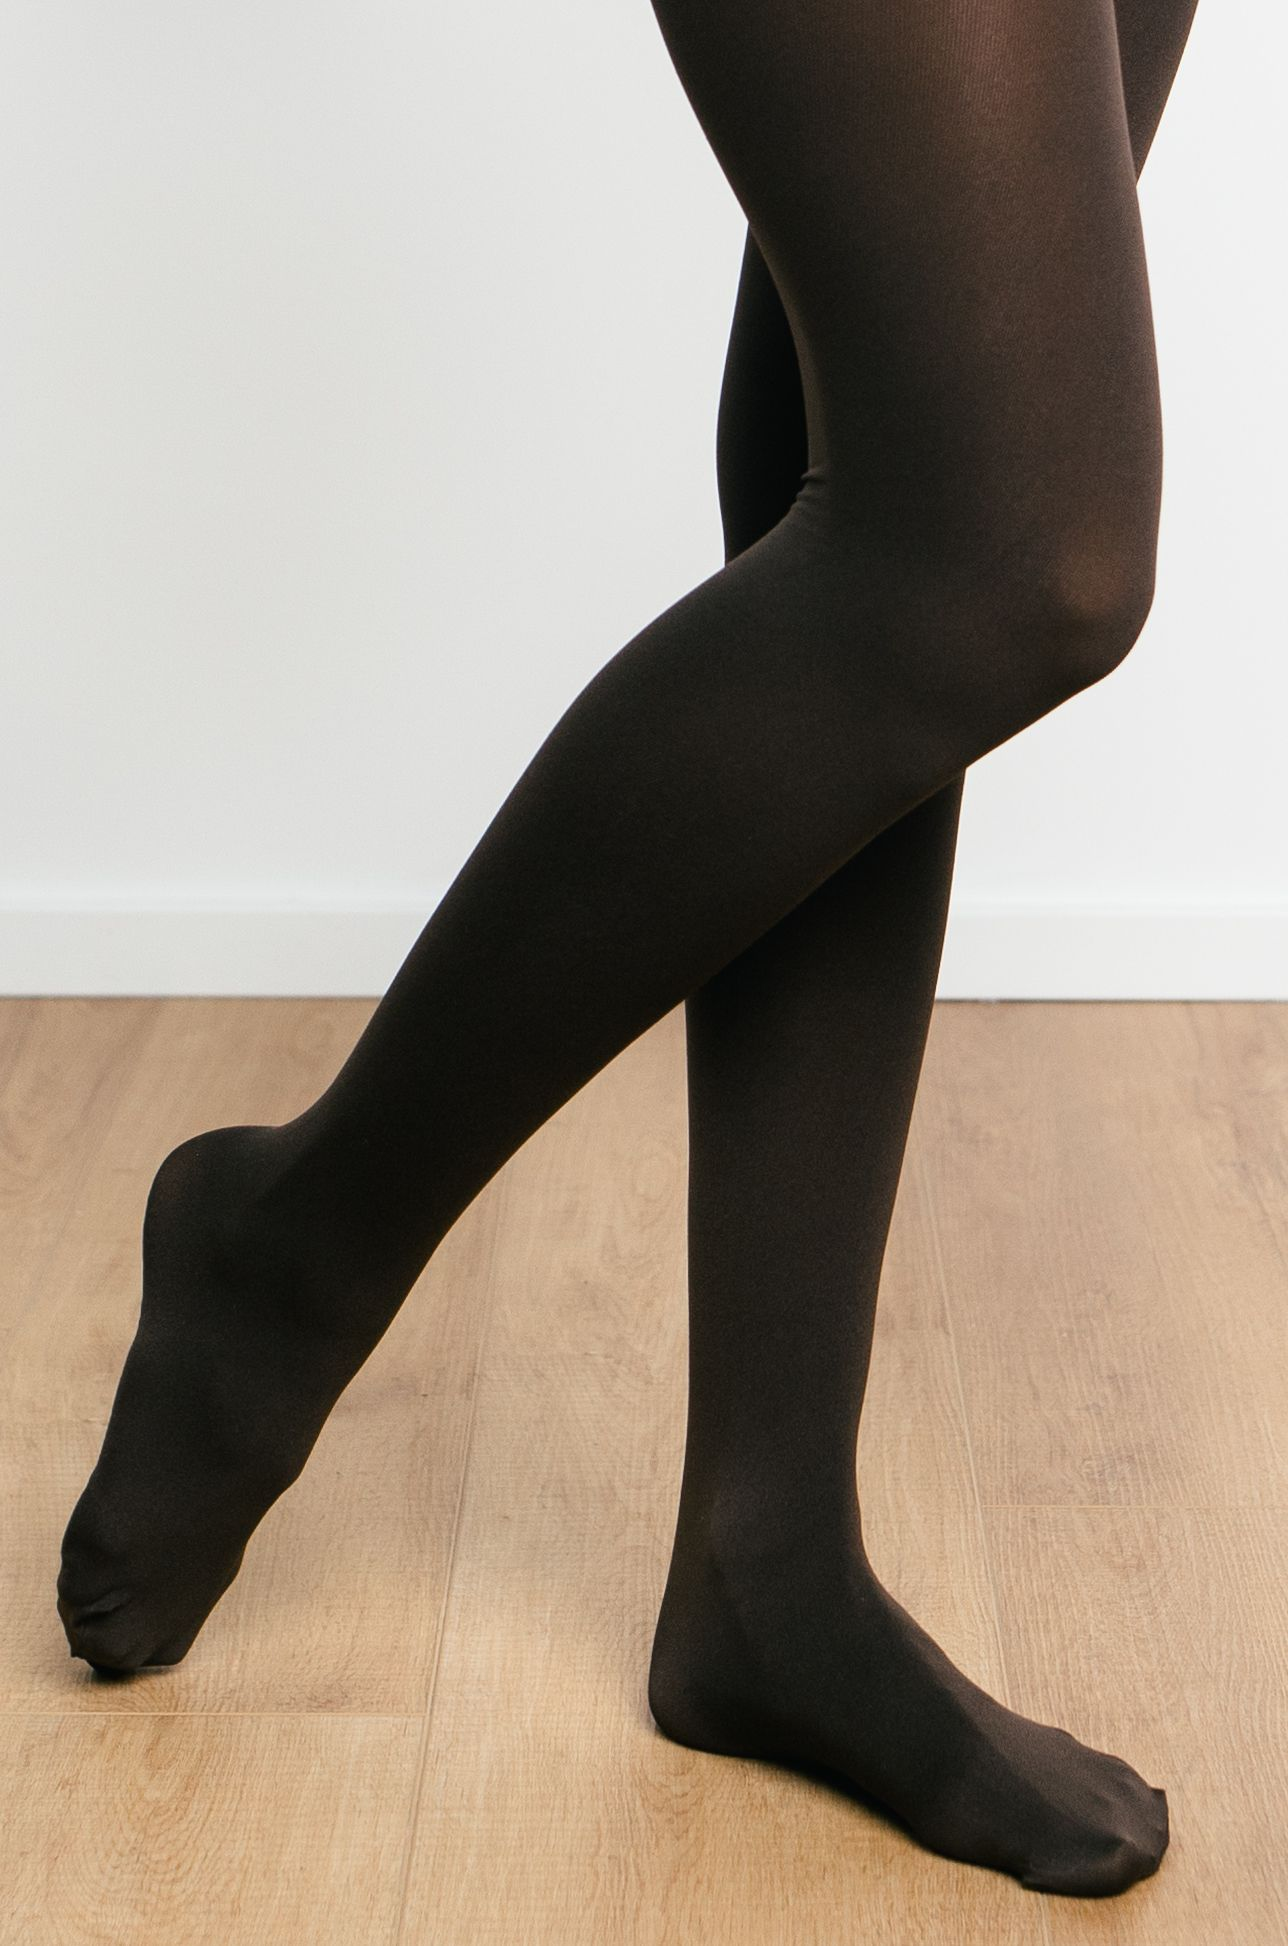 d78a5a421 Dearn Opaque Tights - Brown in 2019